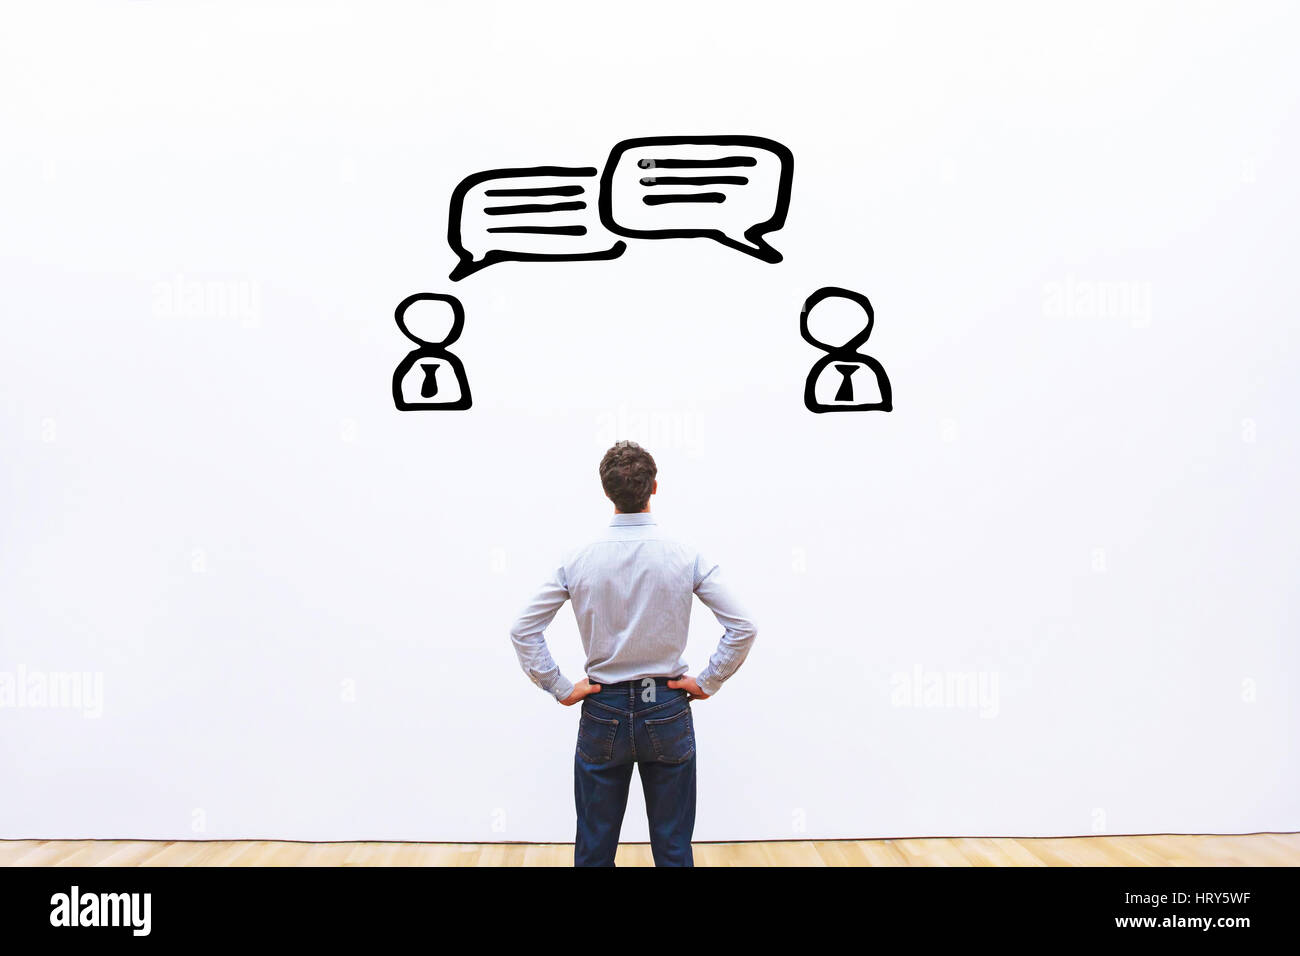 negotiation, dialog or dispute concept, discussion of business people with different opinions, sketch - Stock Image